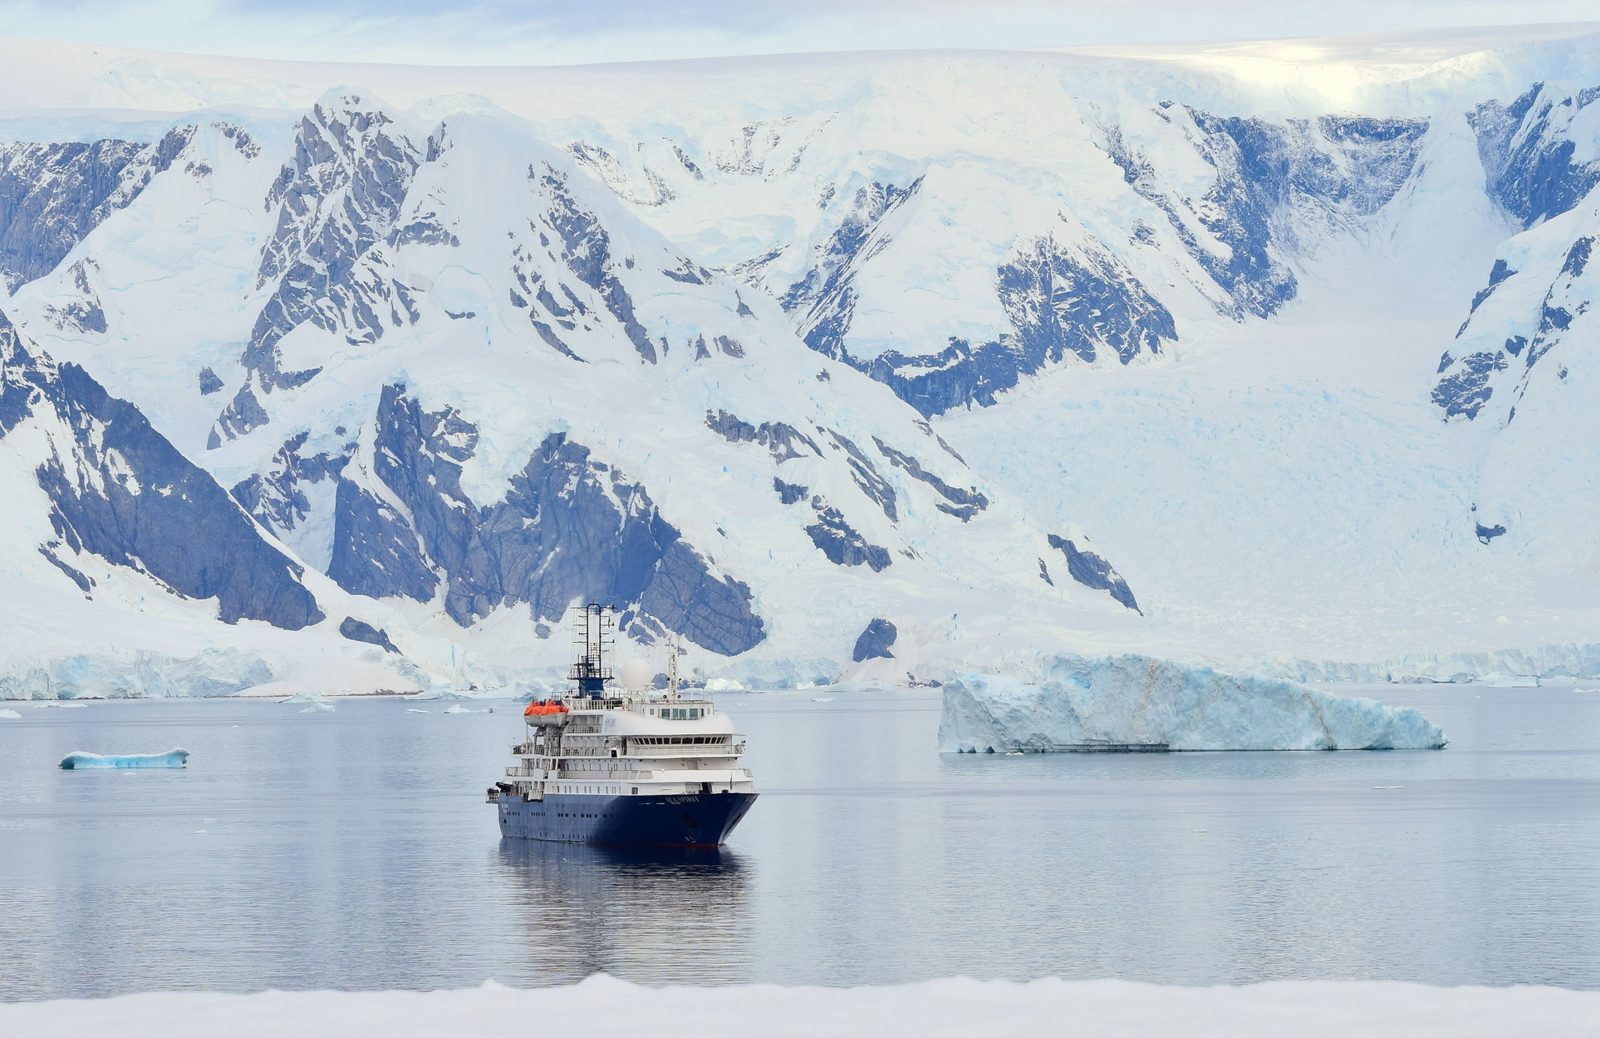 A ship in the background of Hydruga Rocks Antarctica